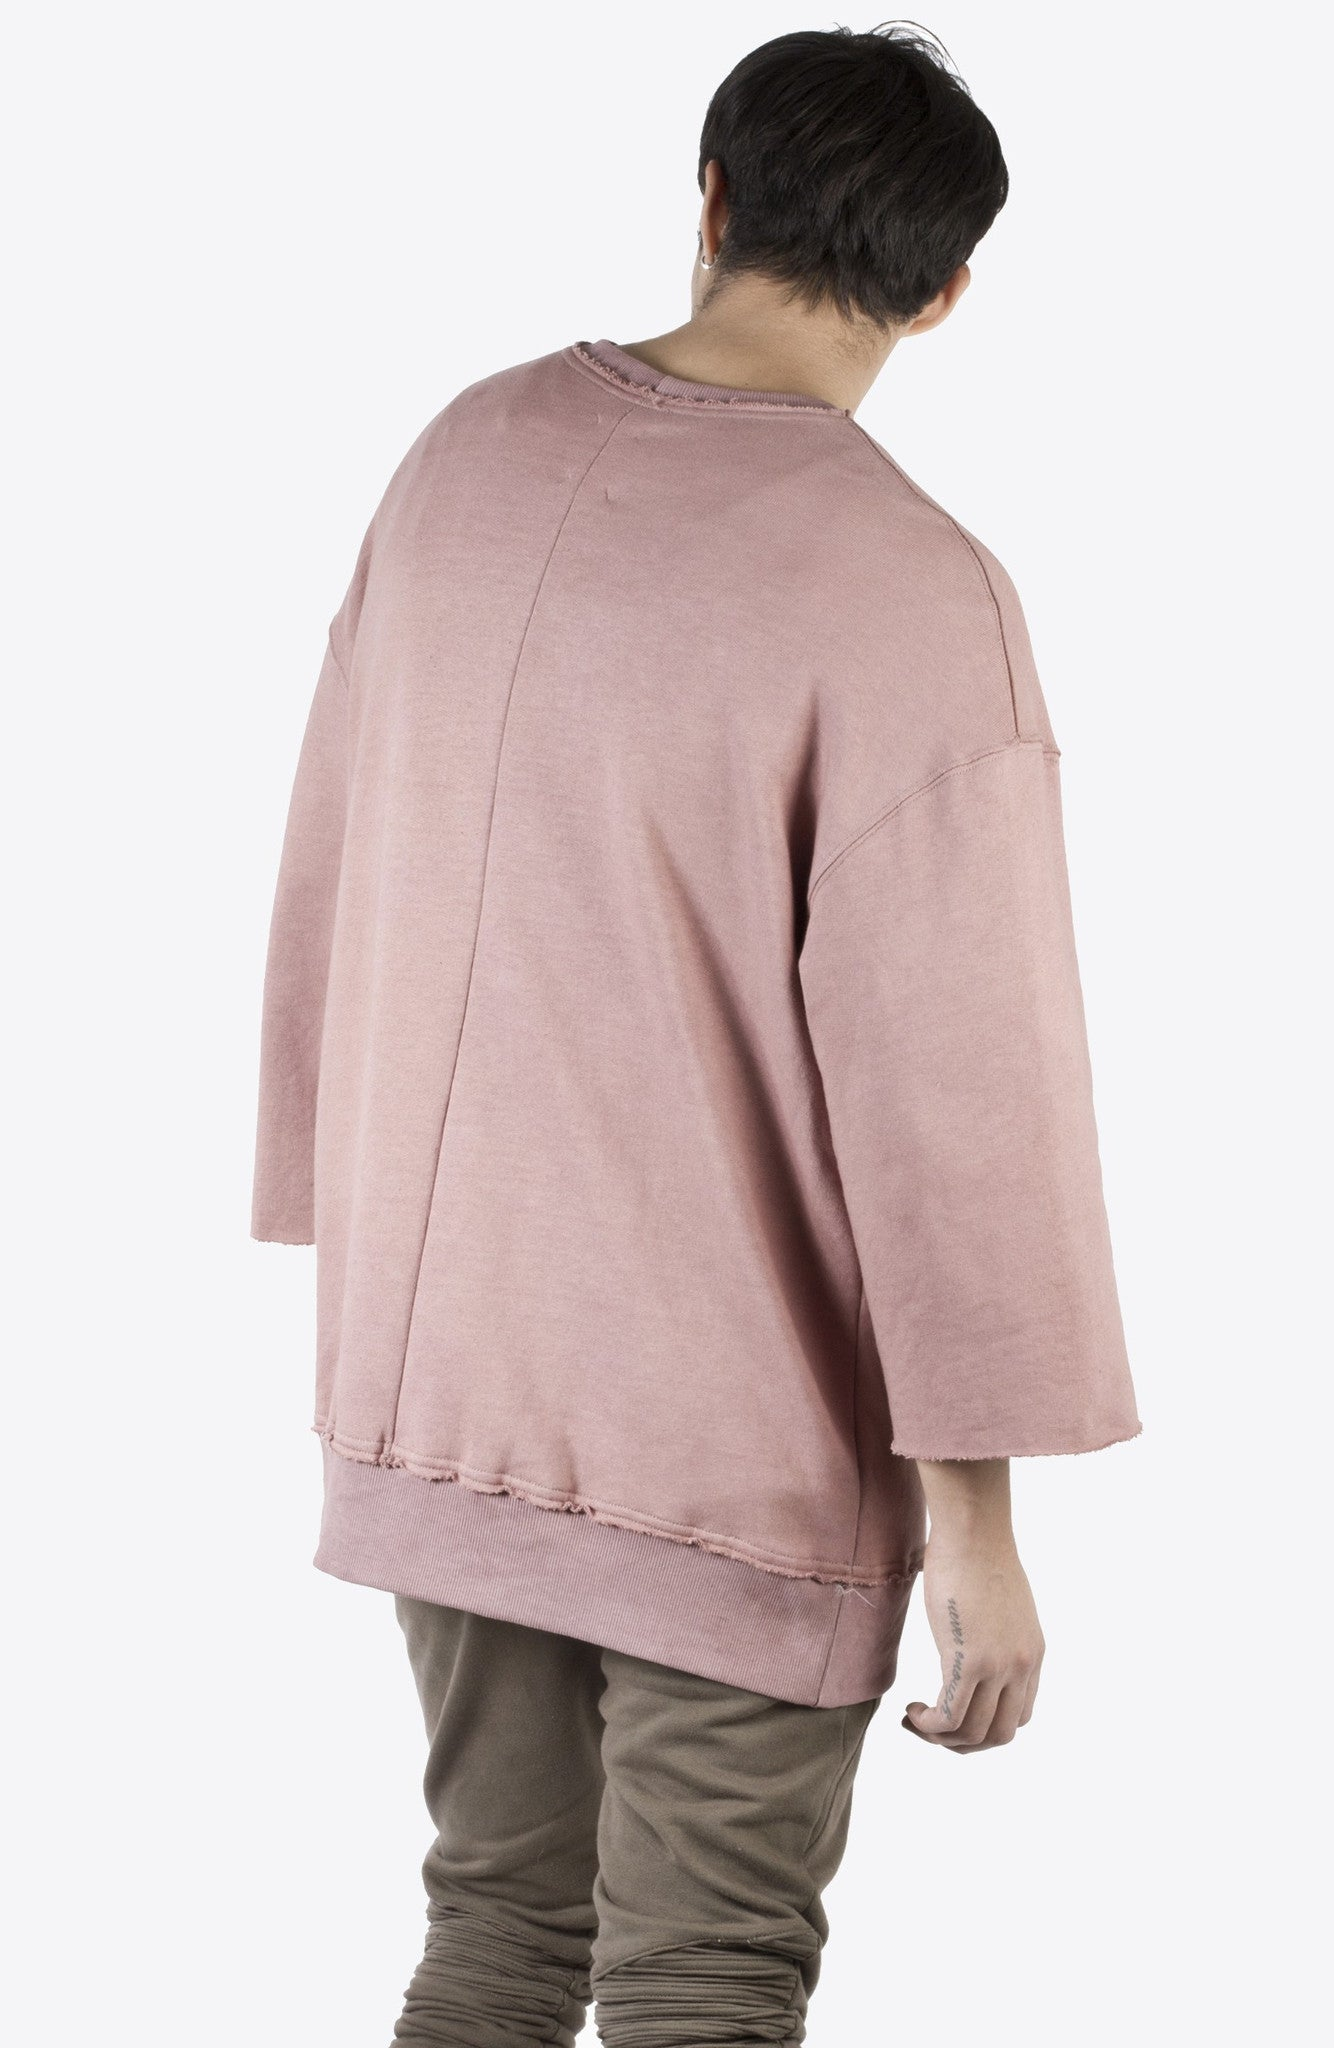 Nide De Guepes - Kimono Sweater Pink - COMMON  - 3